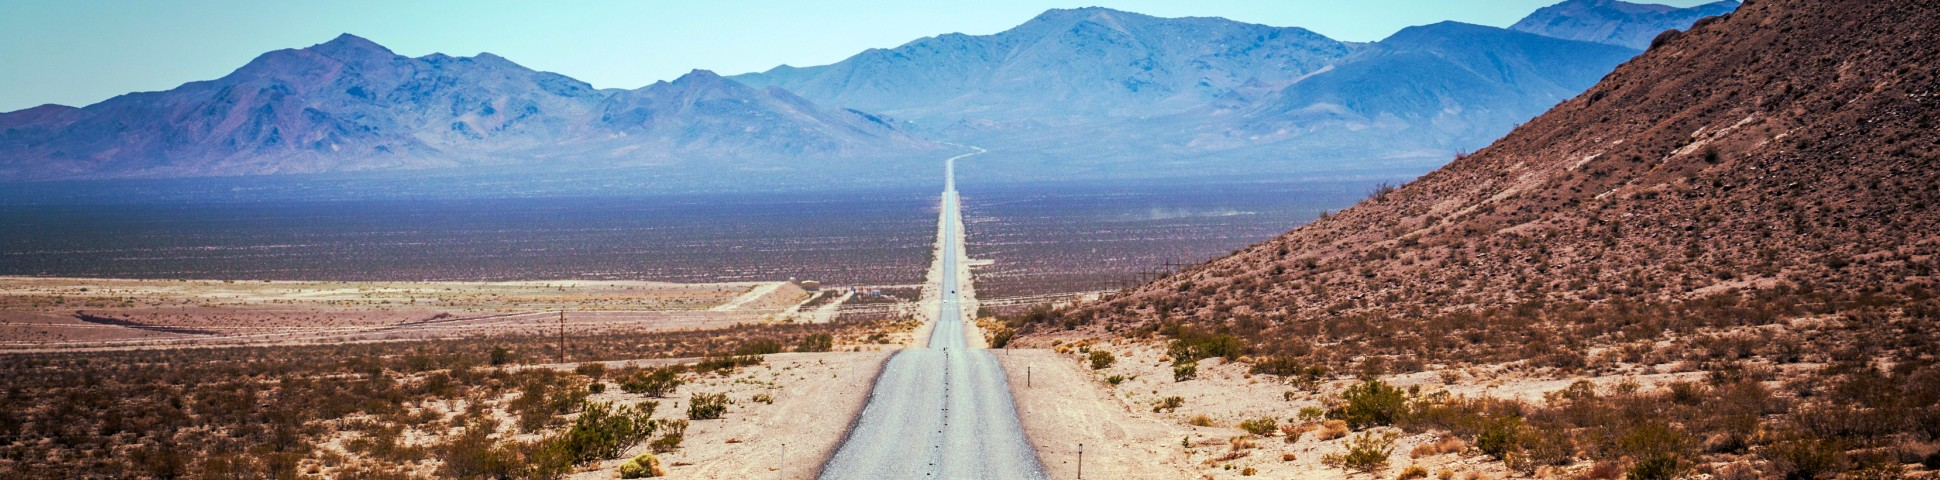 Road in the Death Valley (California)